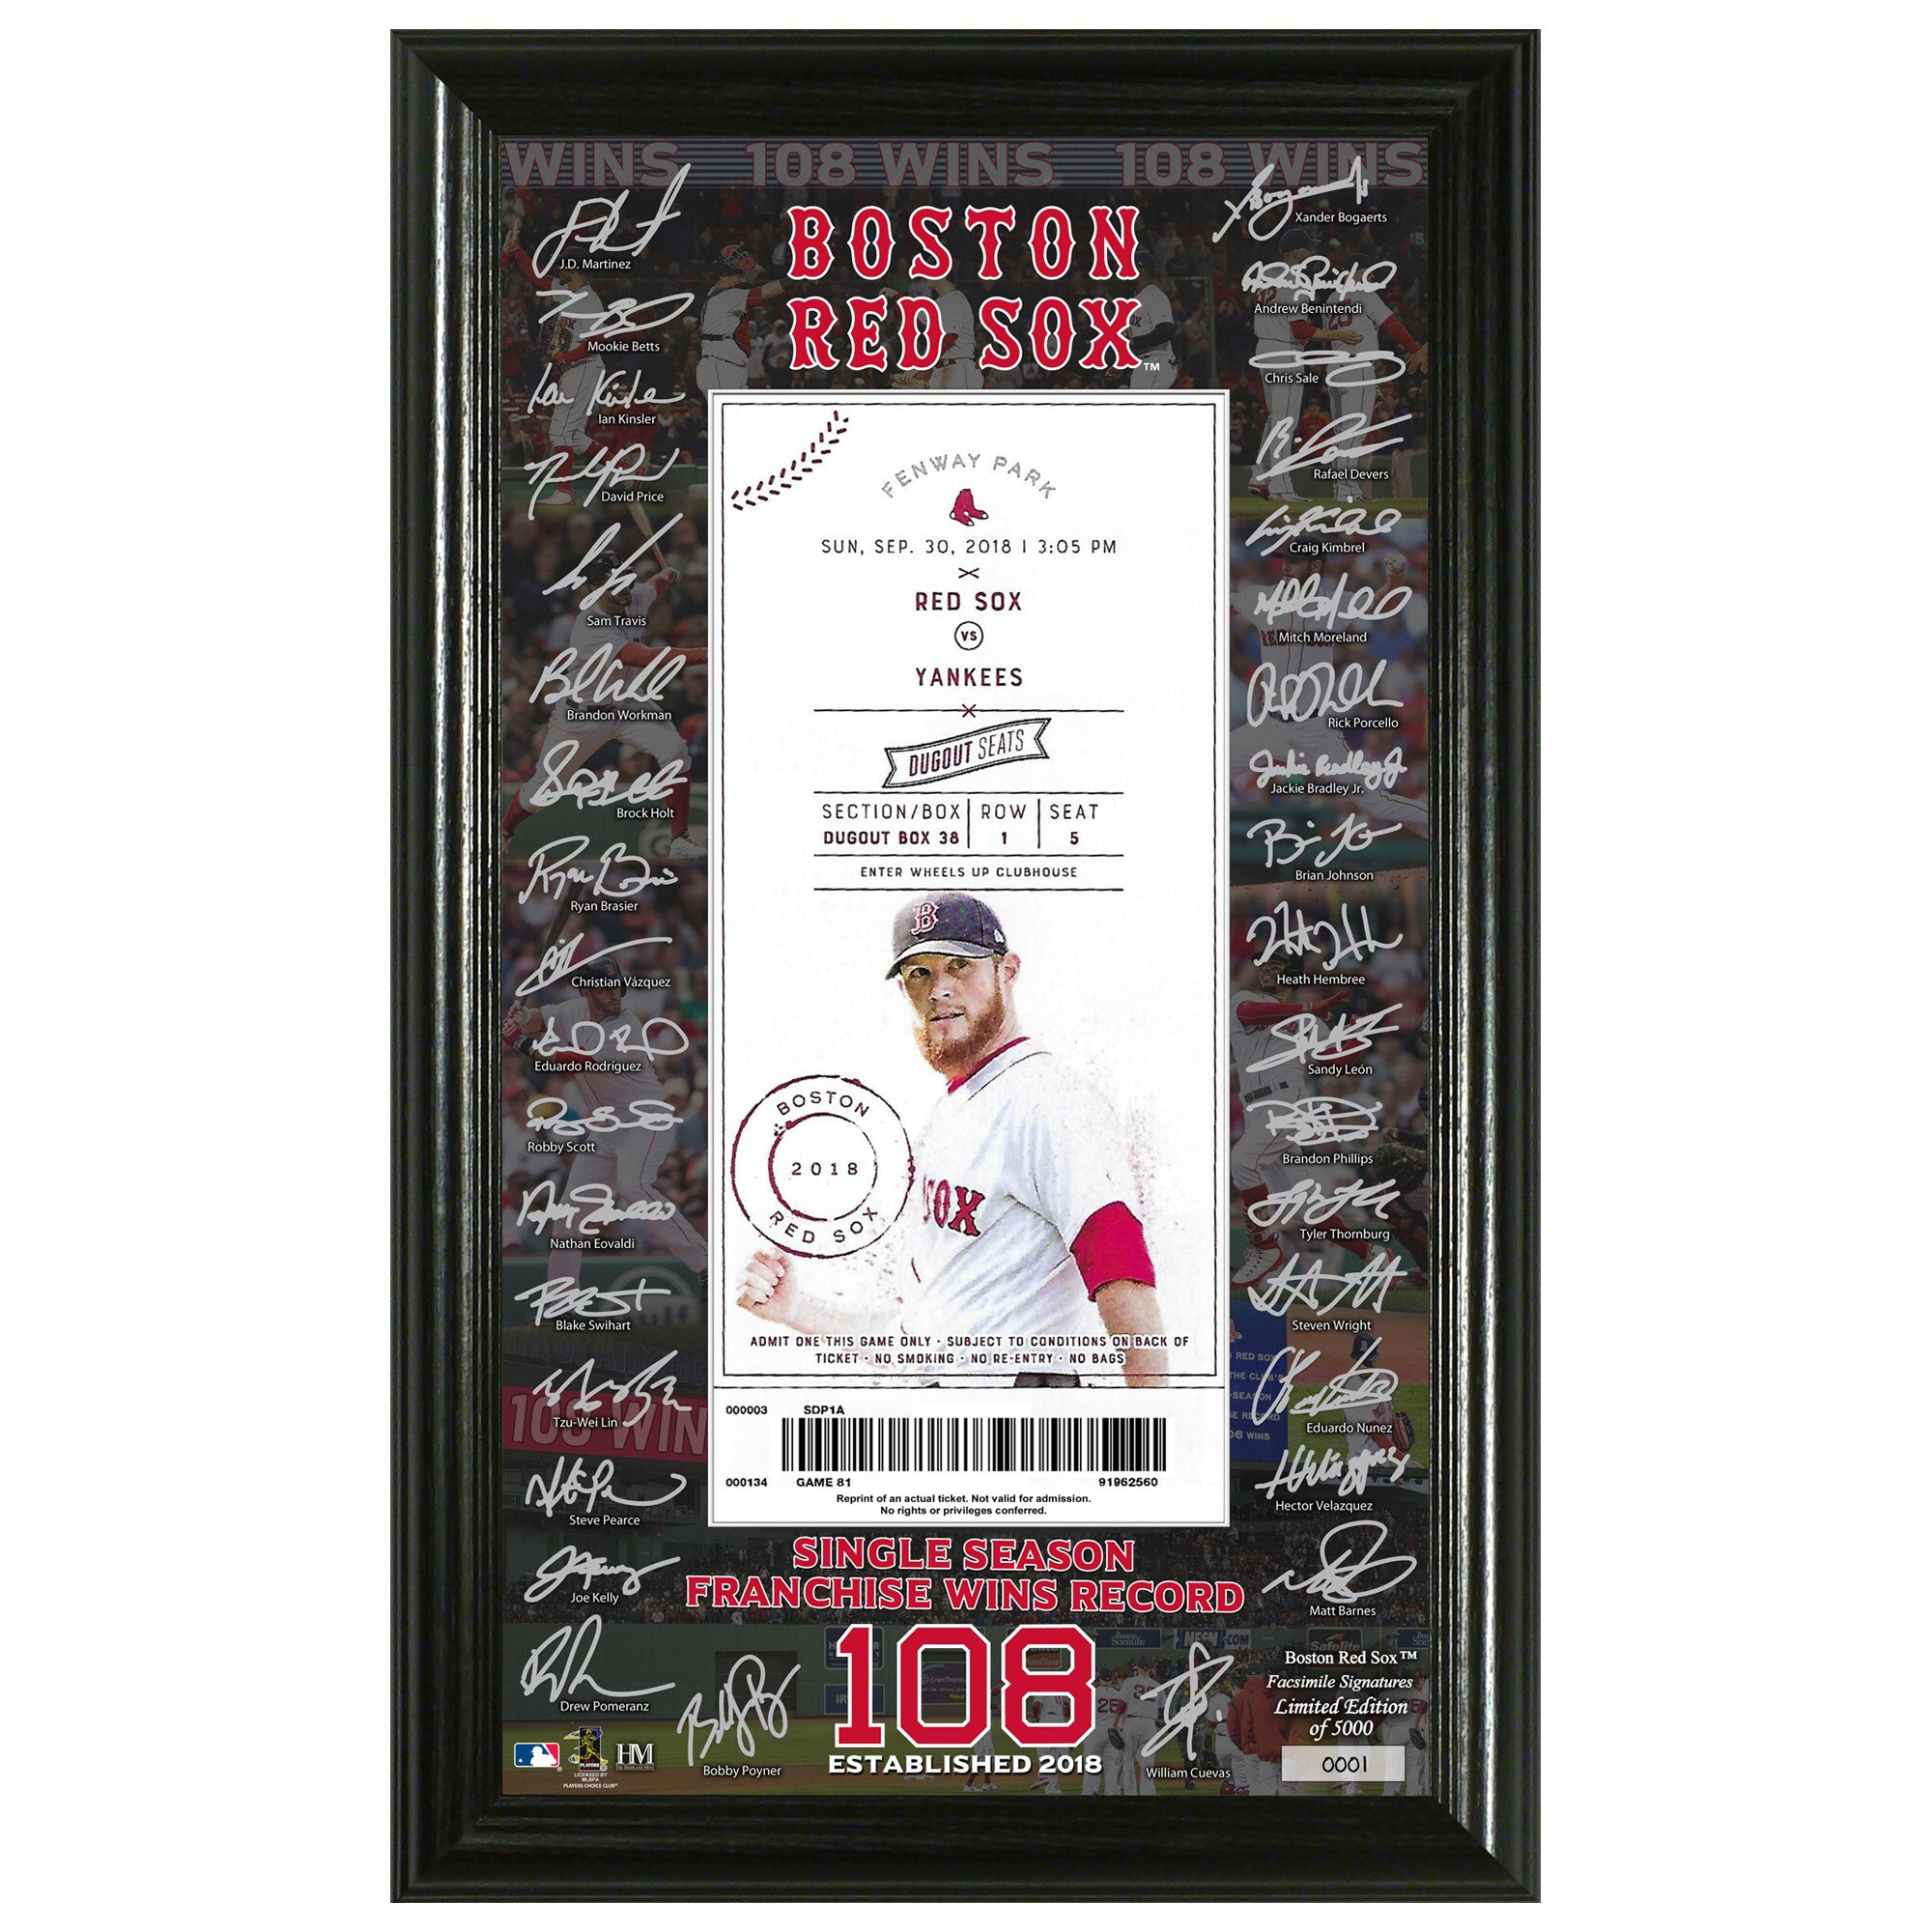 "Boston Red Sox Highland Mint 2018 Single Season Franchise Wins Record 12"" x 20"" Signature Ticket Frame"